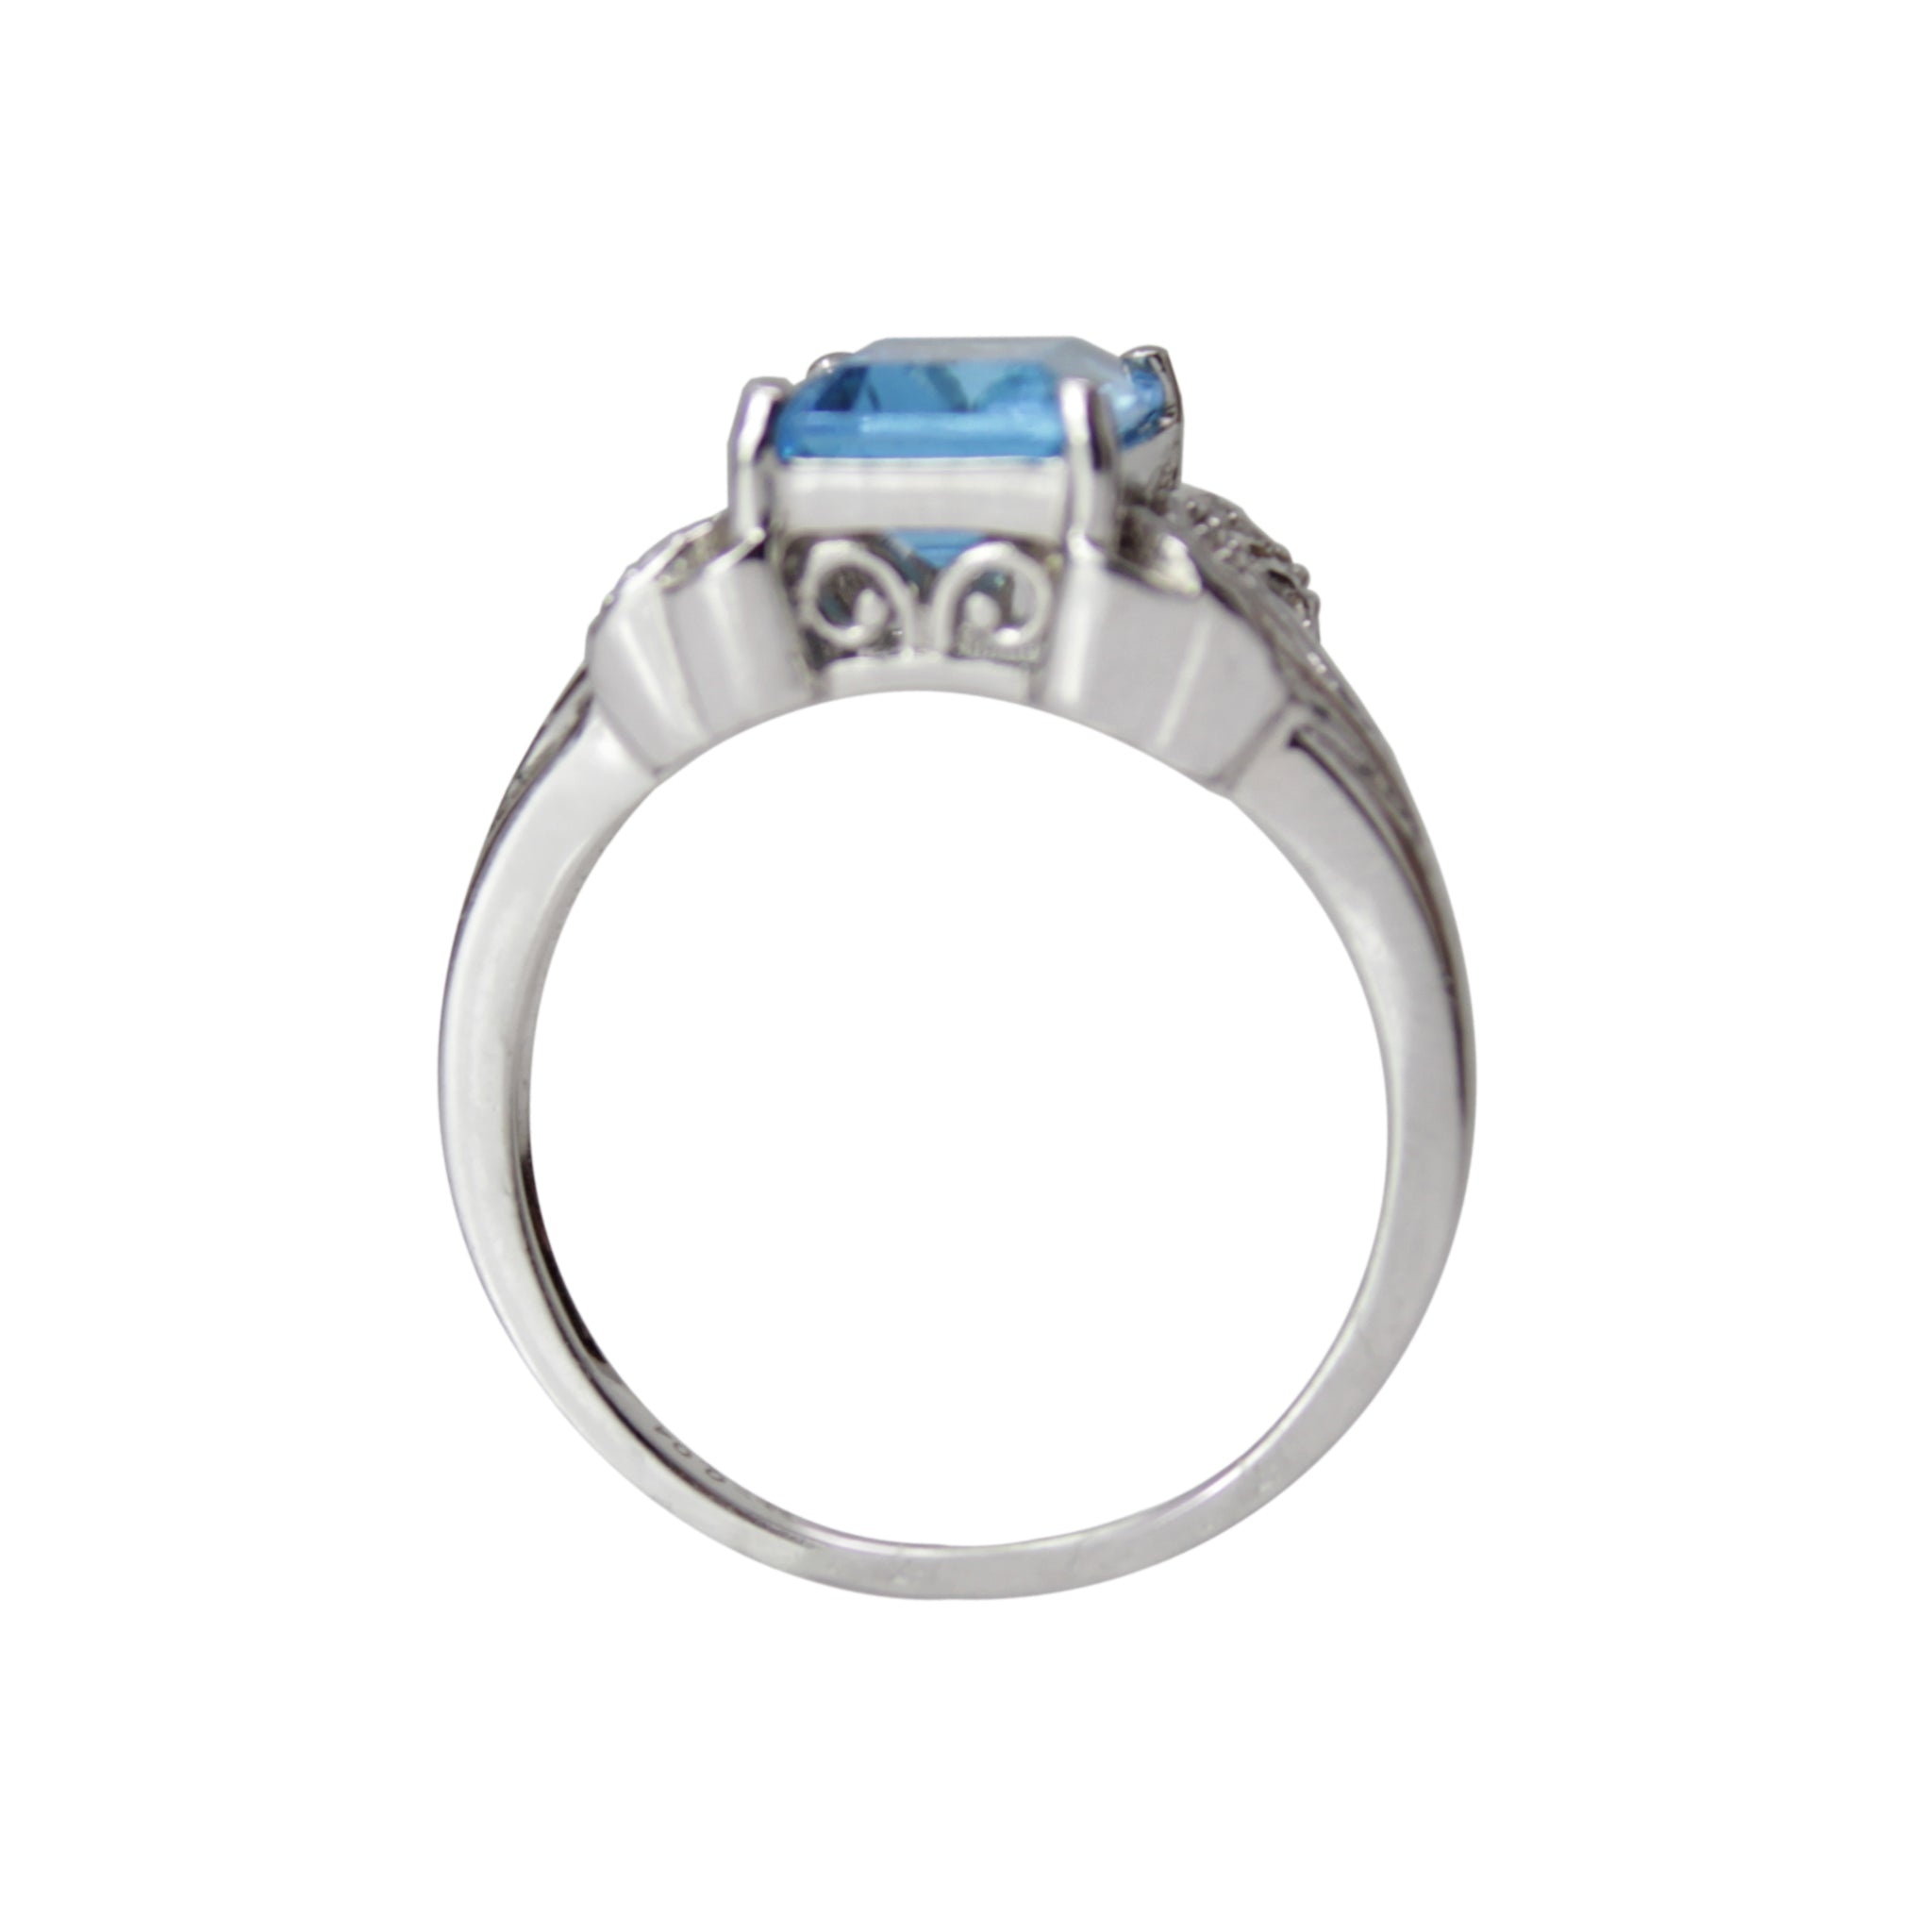 Cinderella Blue Topaz Ring - 10k White Gold, Blue Topaz and Diamond Solitaire Ring